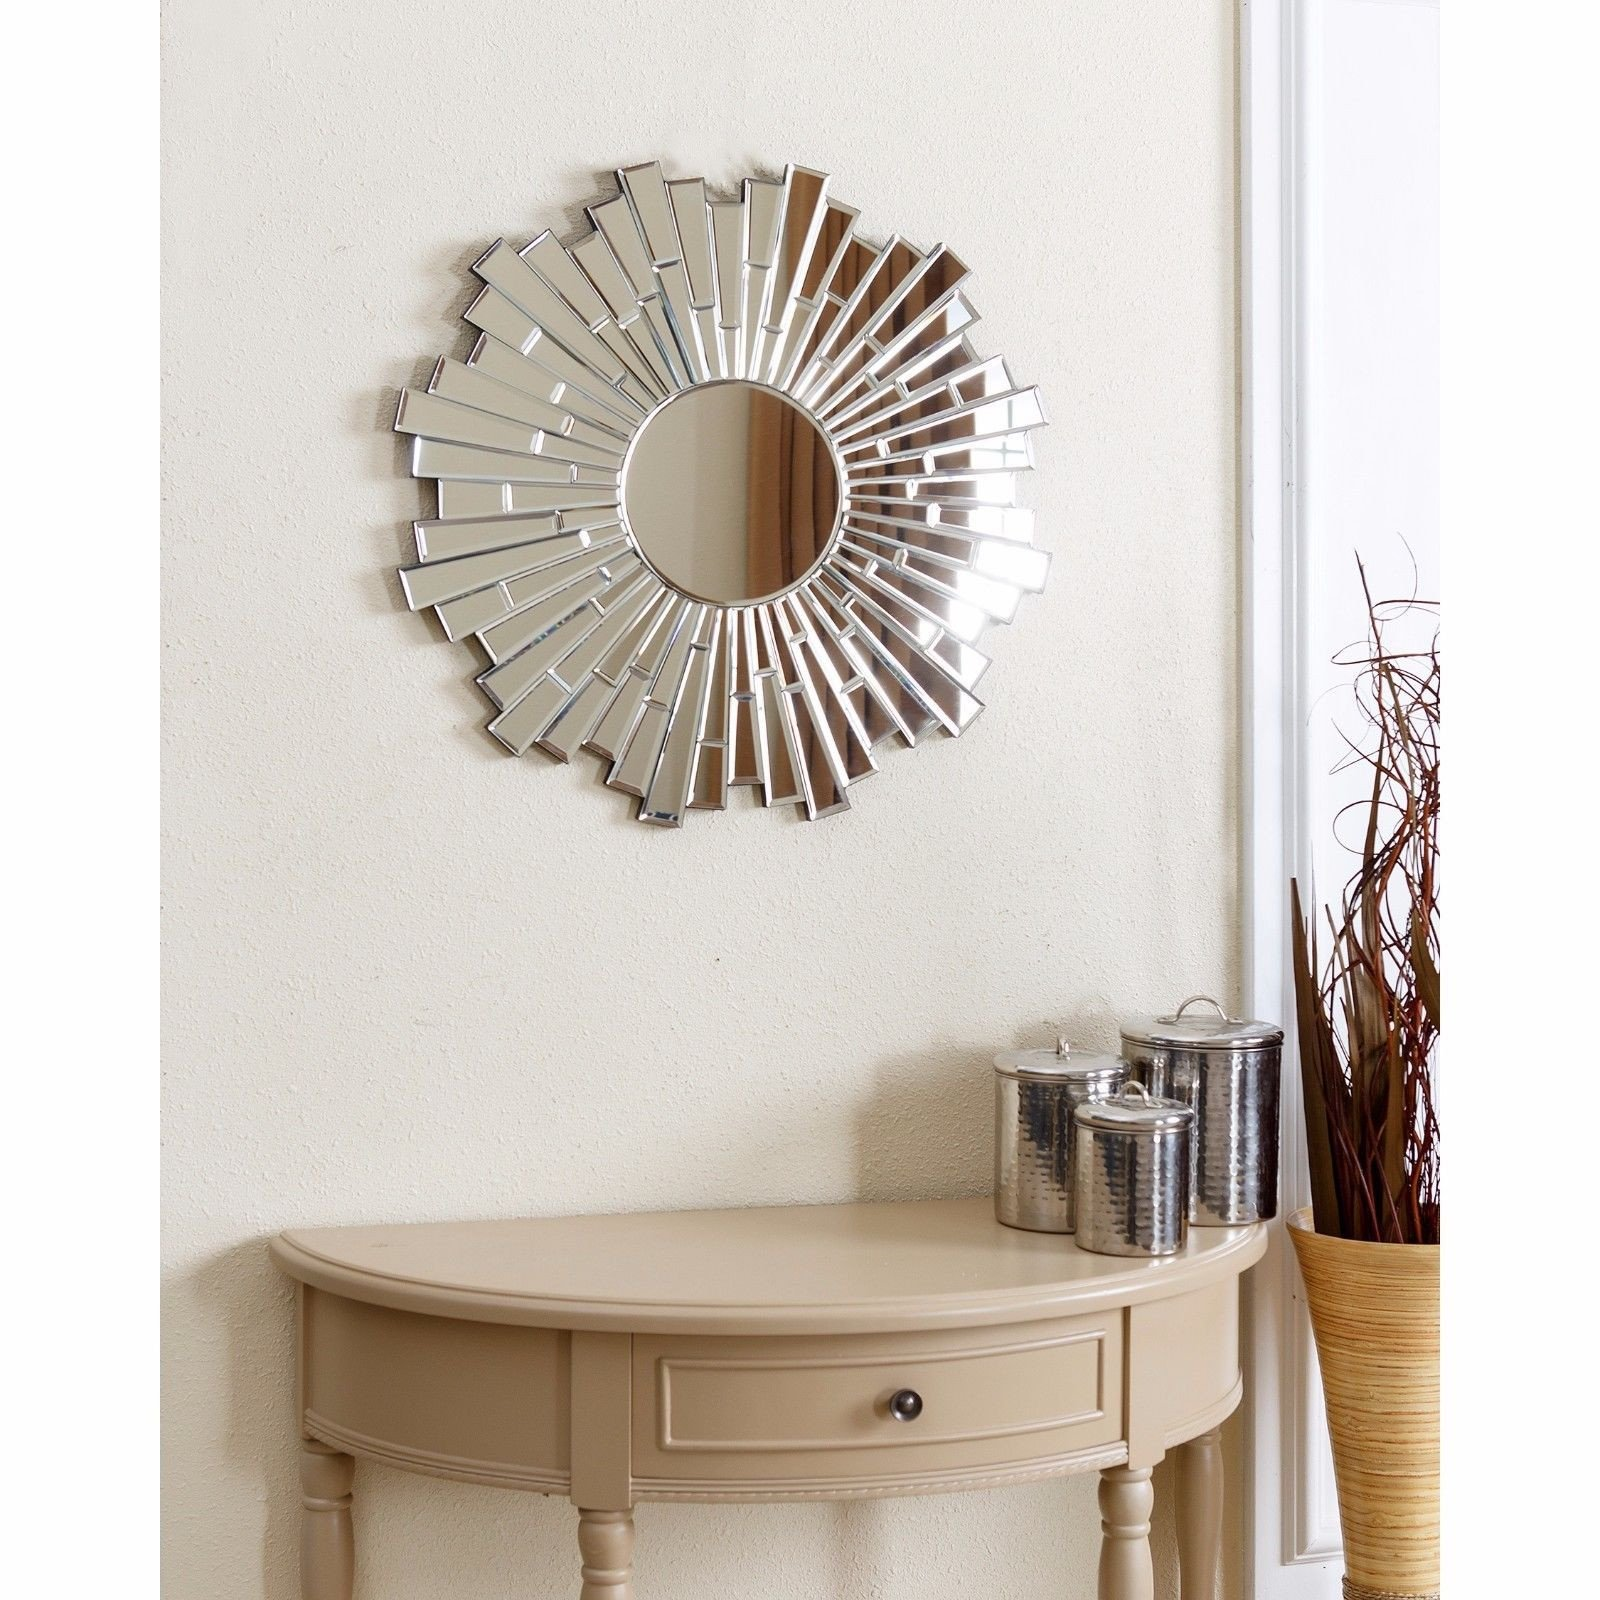 Small Mirrors for Wall Decor Inspirational Round Wall Mirror Modern Sunburst Contemporary Accent Wood Decor Silver Home New